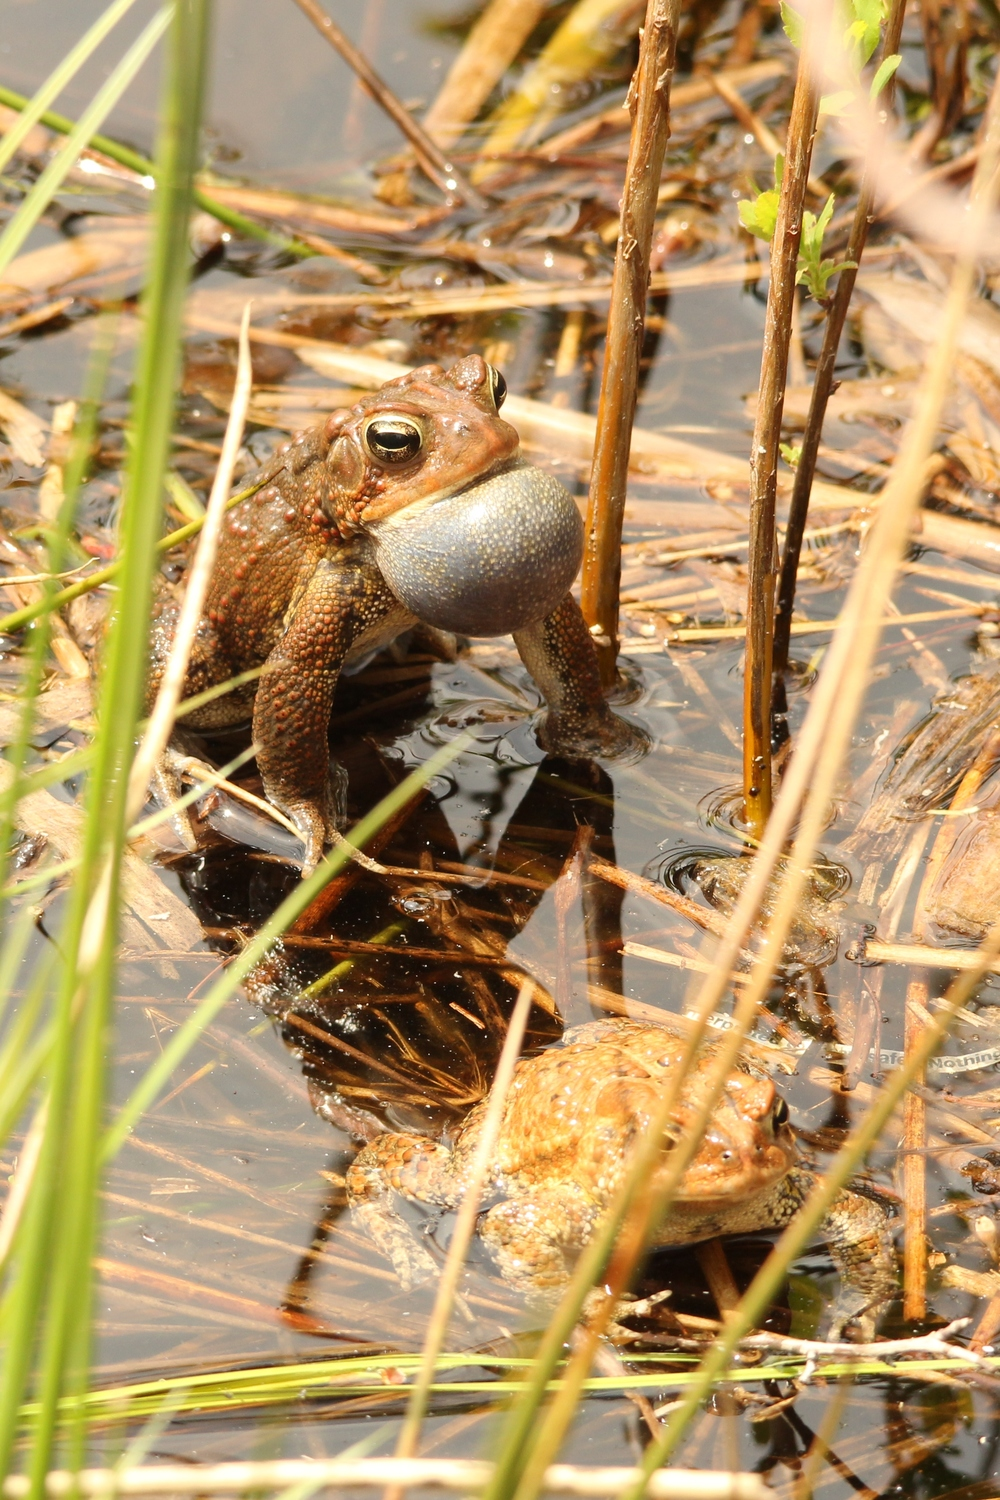 American Toad - one of my favorite Springtime activities is watching toads chase each other around in full daylight.